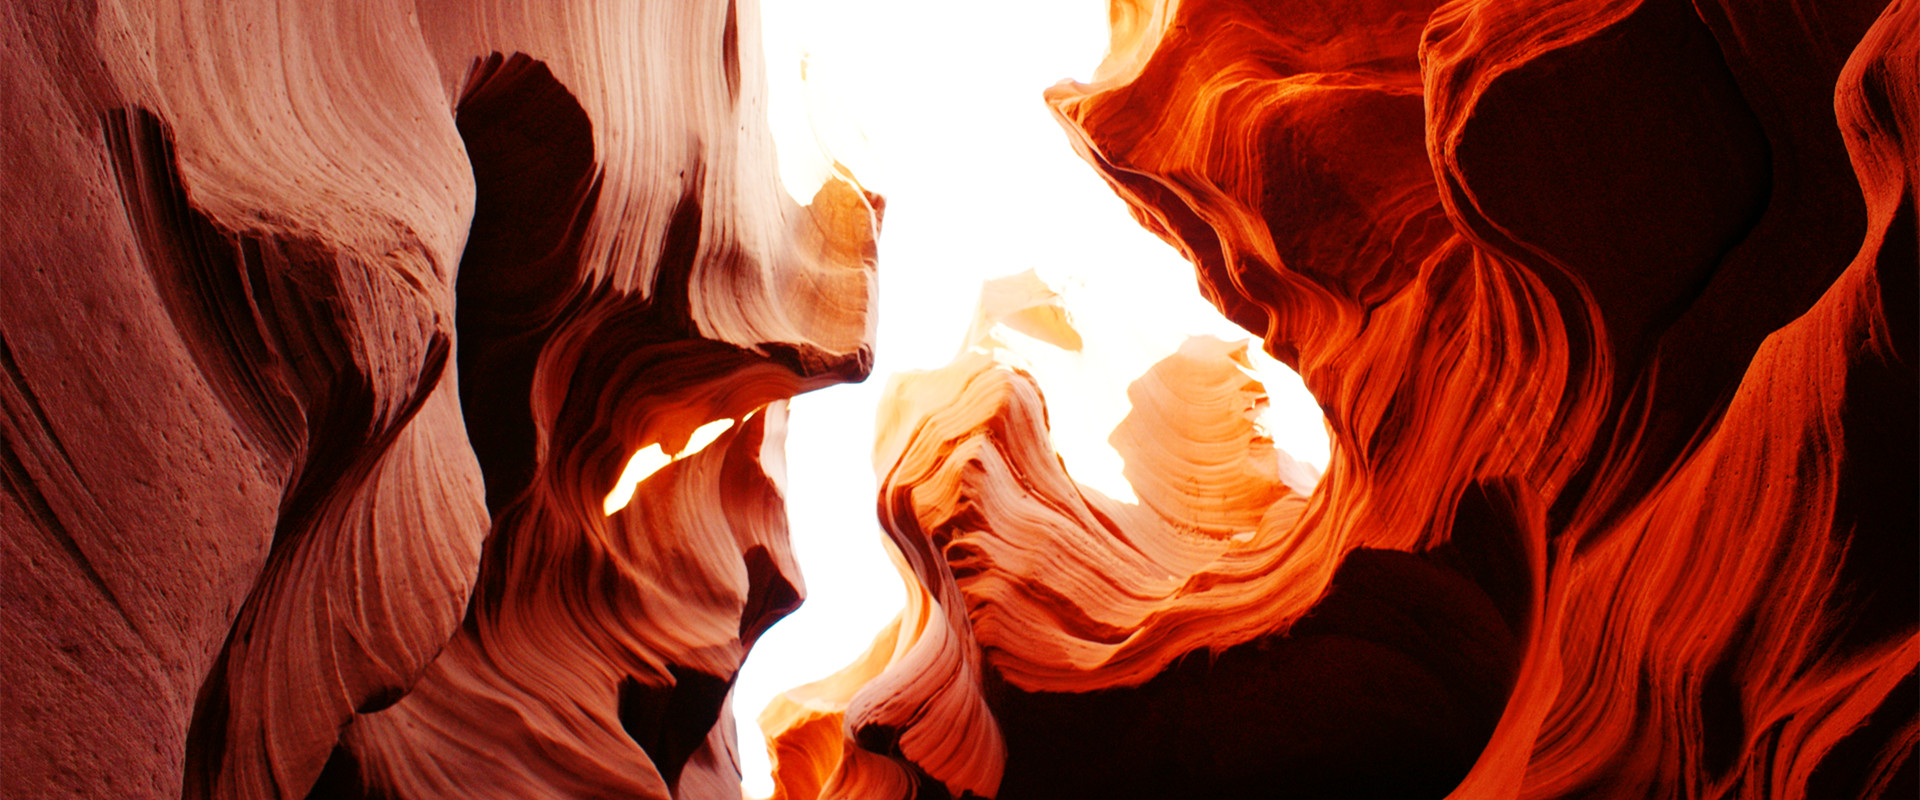 下羚羊谷 Lower Antelope Canyon